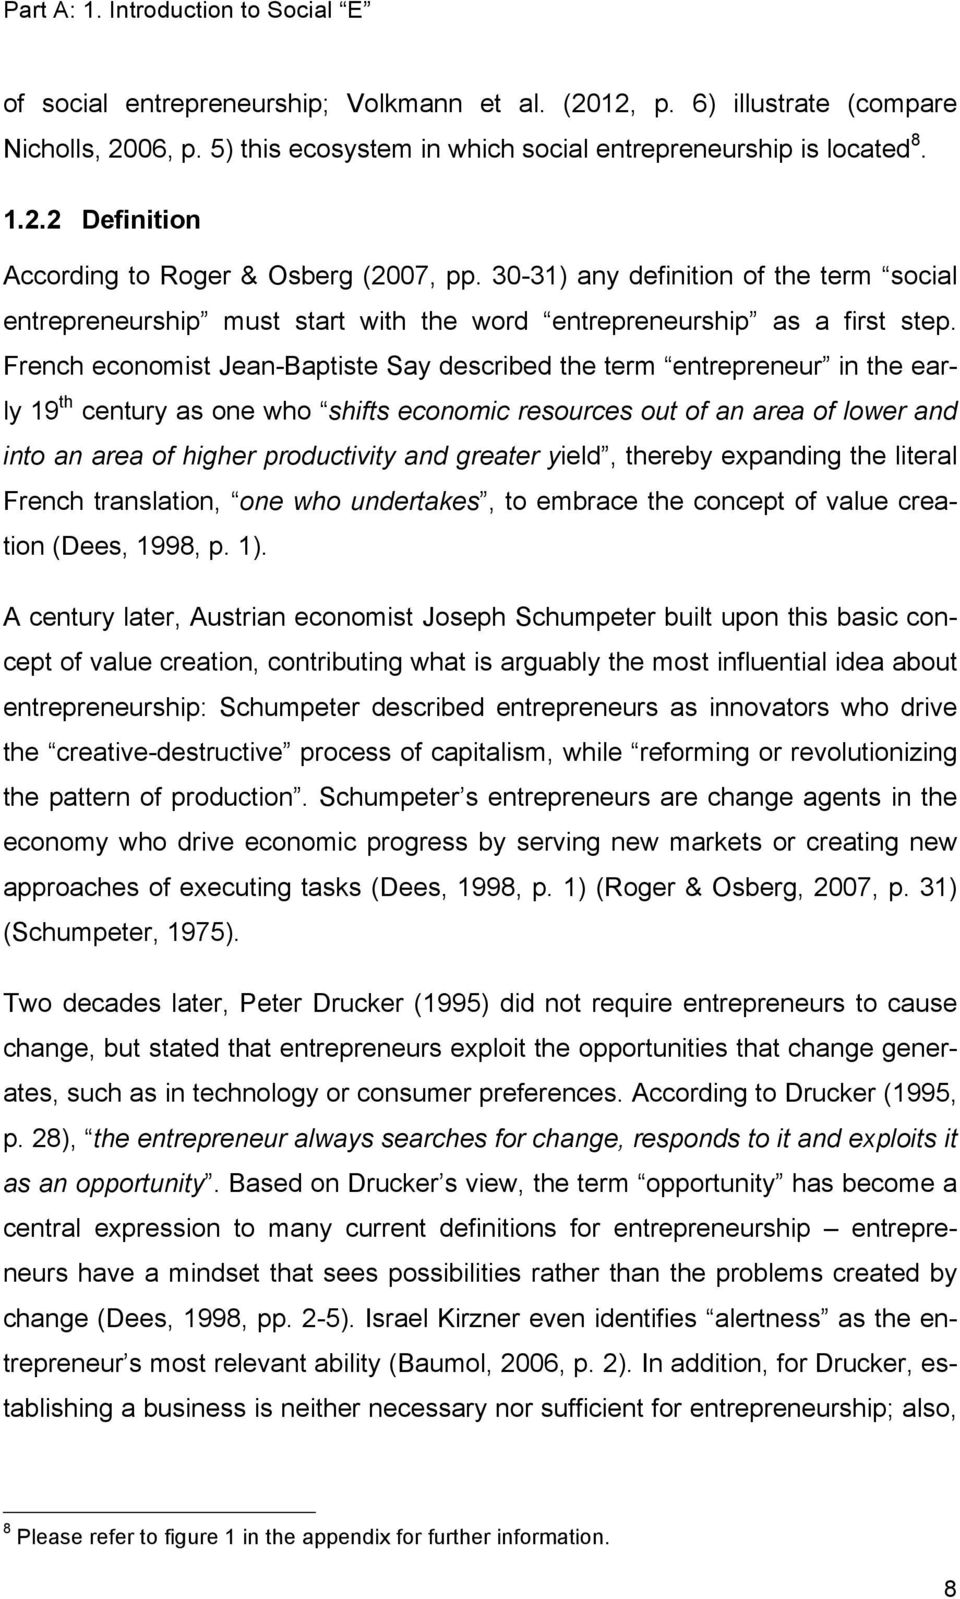 French economist Jean-Baptiste Say described the term entrepreneur in the early 19 th century as one who shifts economic resources out of an area of lower and into an area of higher productivity and